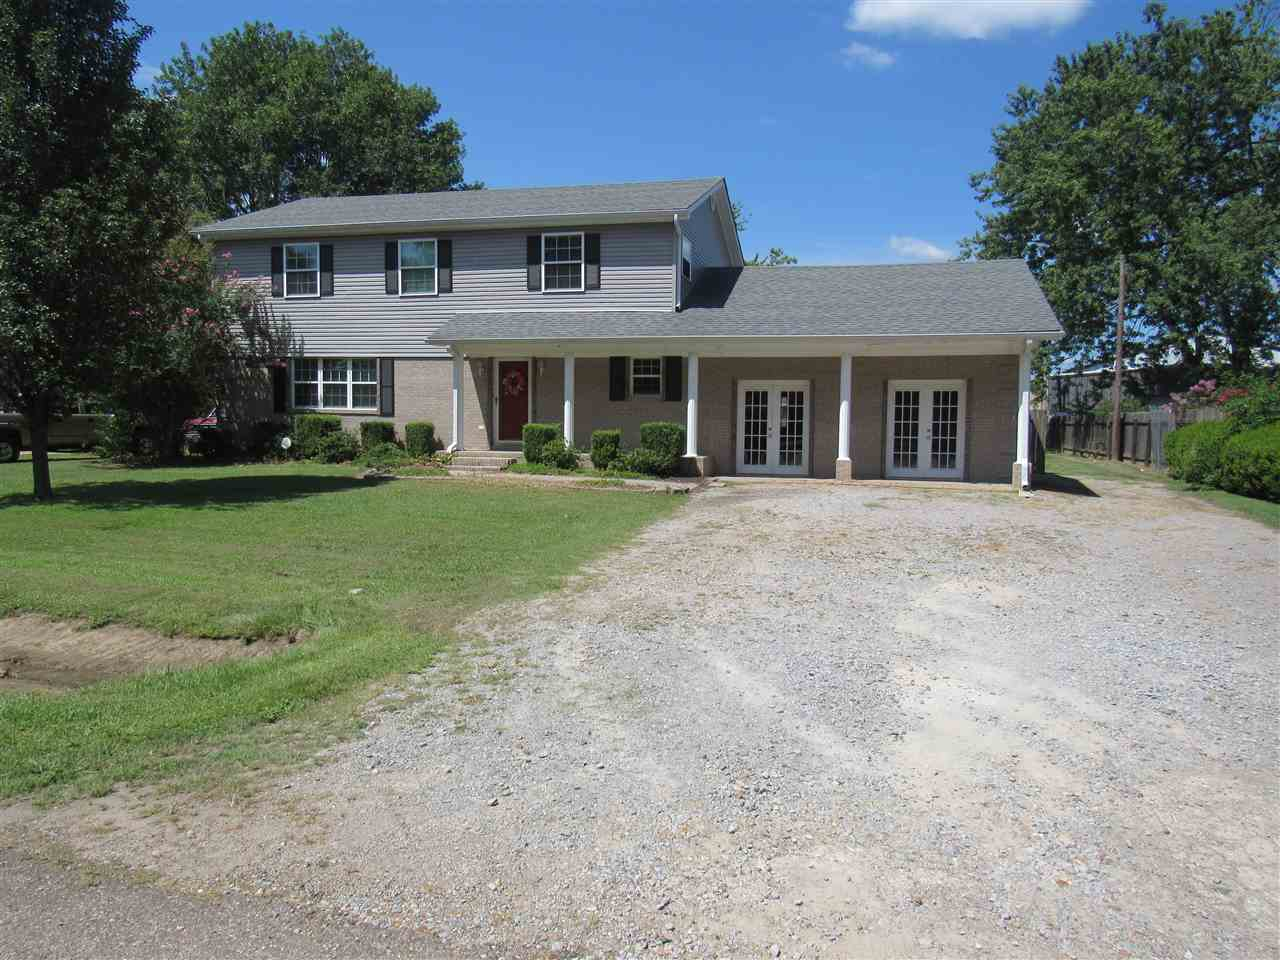 93 Crestview Dr, Finley, Tennessee 38030, 4 Bedrooms Bedrooms, ,3 BathroomsBathrooms,Residential,For Sale,93 Crestview Dr,203188